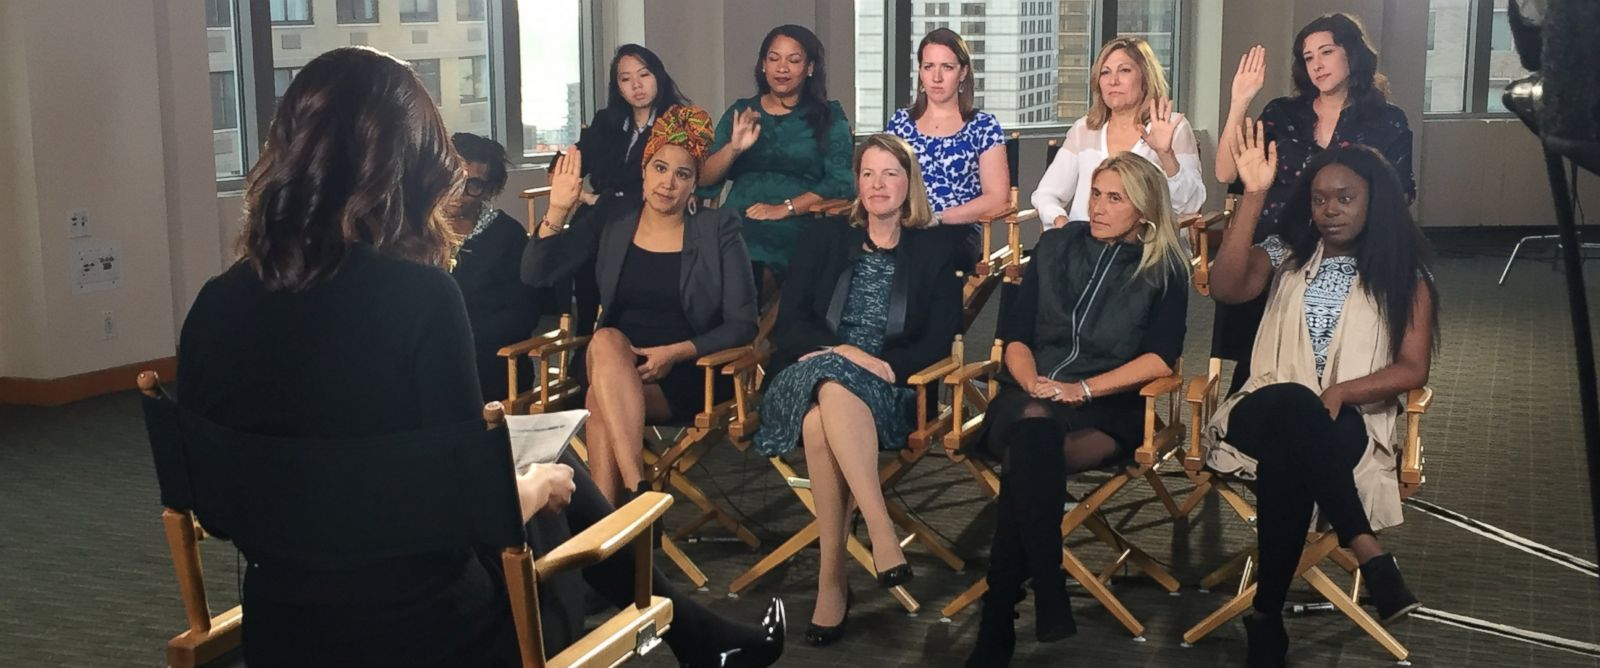 PHOTO: ABC News gathered 10 women from 10 different industries who opened up on experiencing sexual harassment in the workplace.